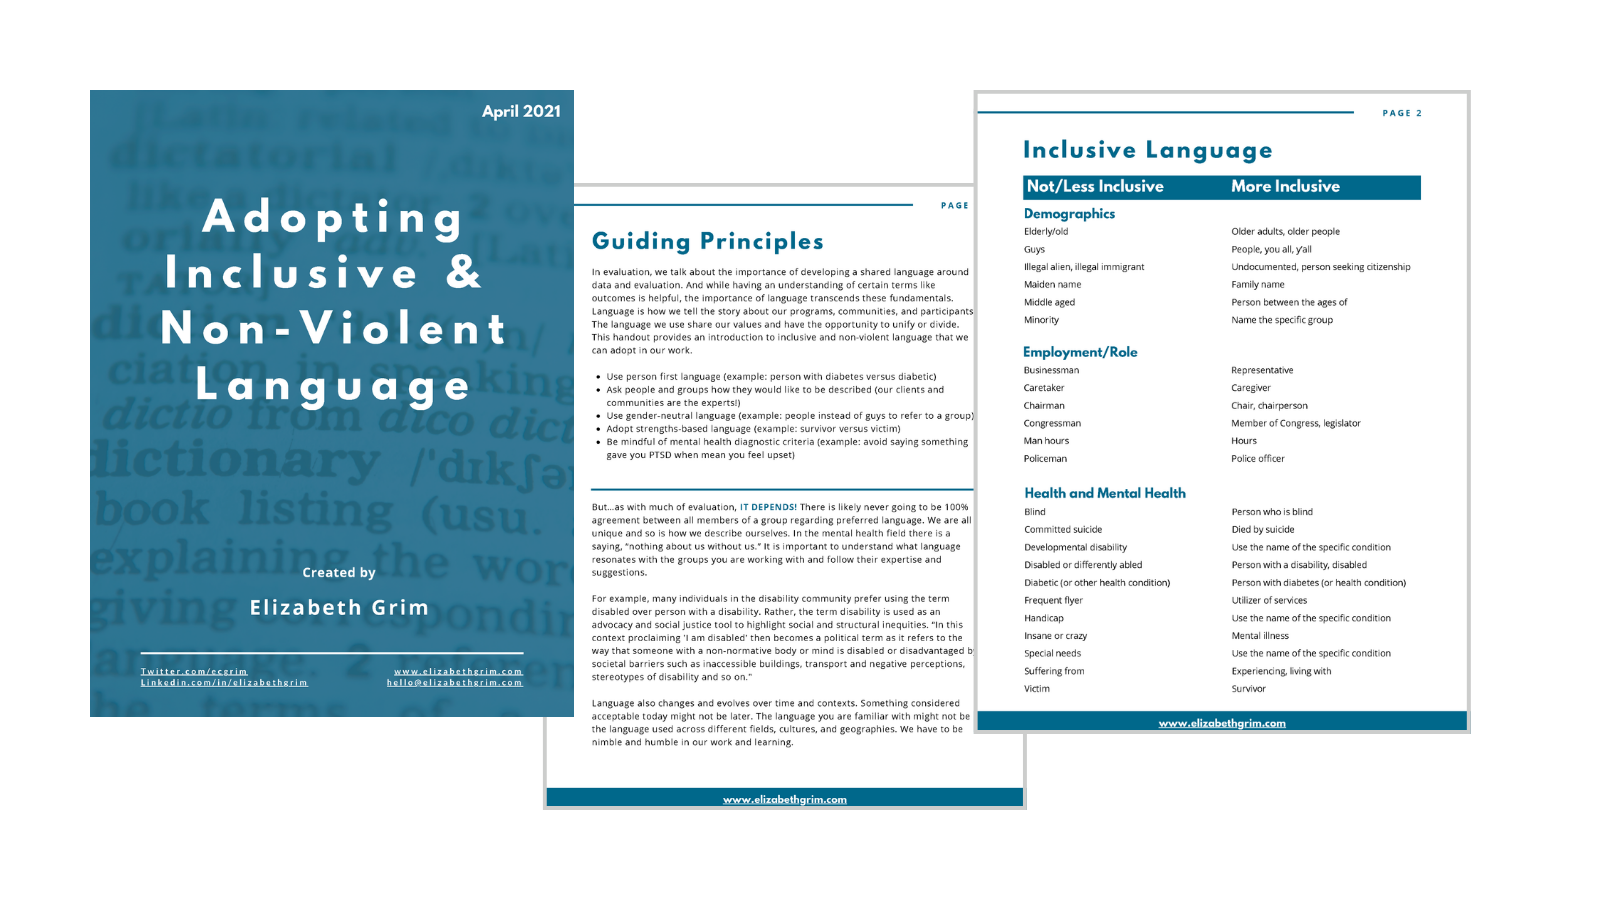 Images from the adopting inclusive and non-violent language handout.